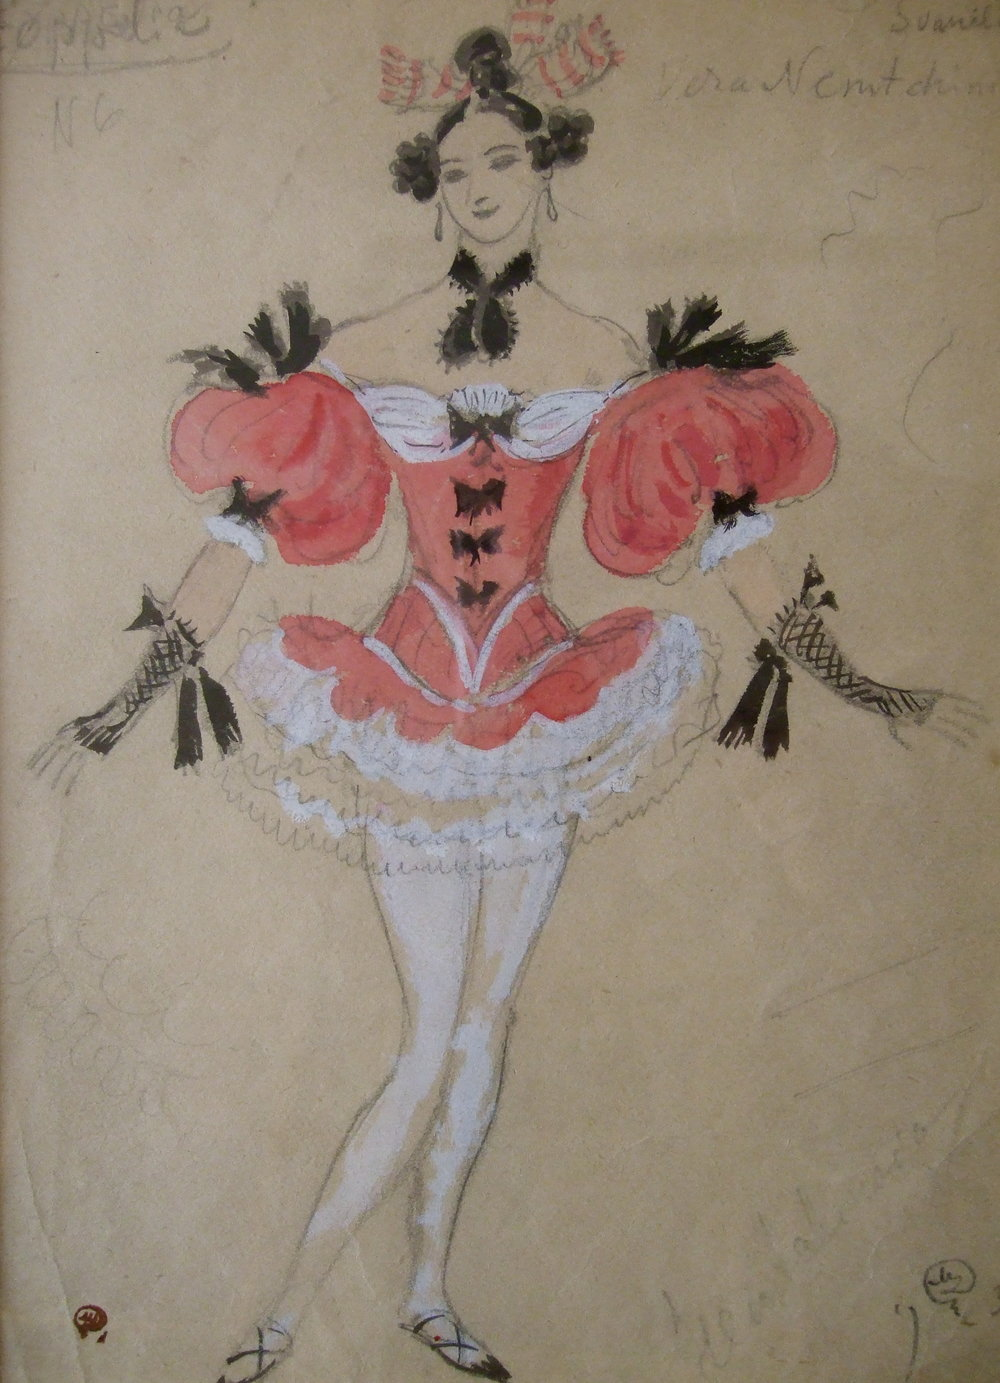 "Costume design for ballet ""Coppelia"".  Costume design for ballet production Coppelia. Gouache on paper, signed and stamped with artist's studio stamp. Size: 31 x 22 cm."